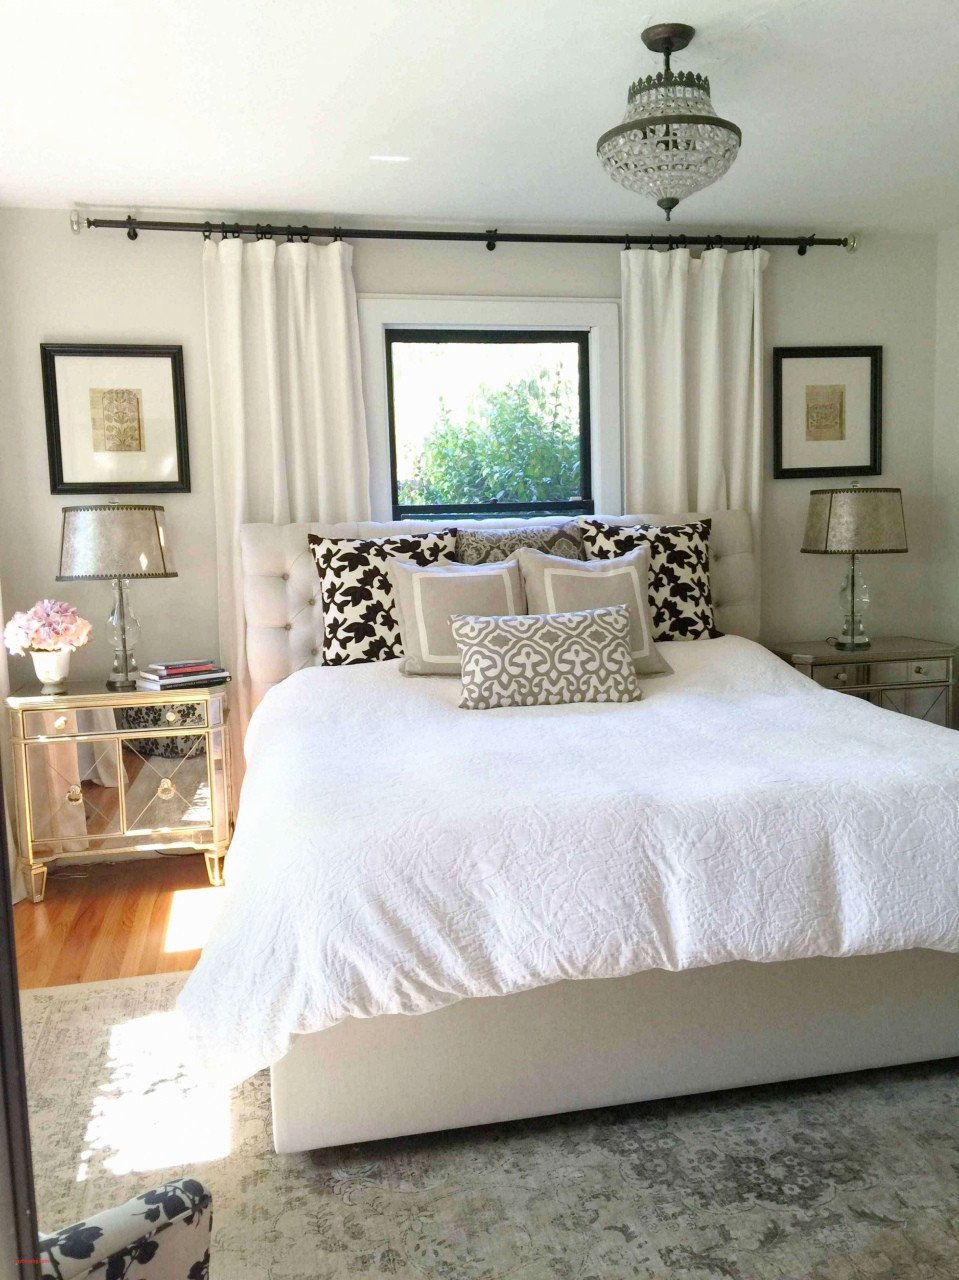 Rooms to Go Full Bedroom Set New Modern Bunk Beds — Procura Home Blog